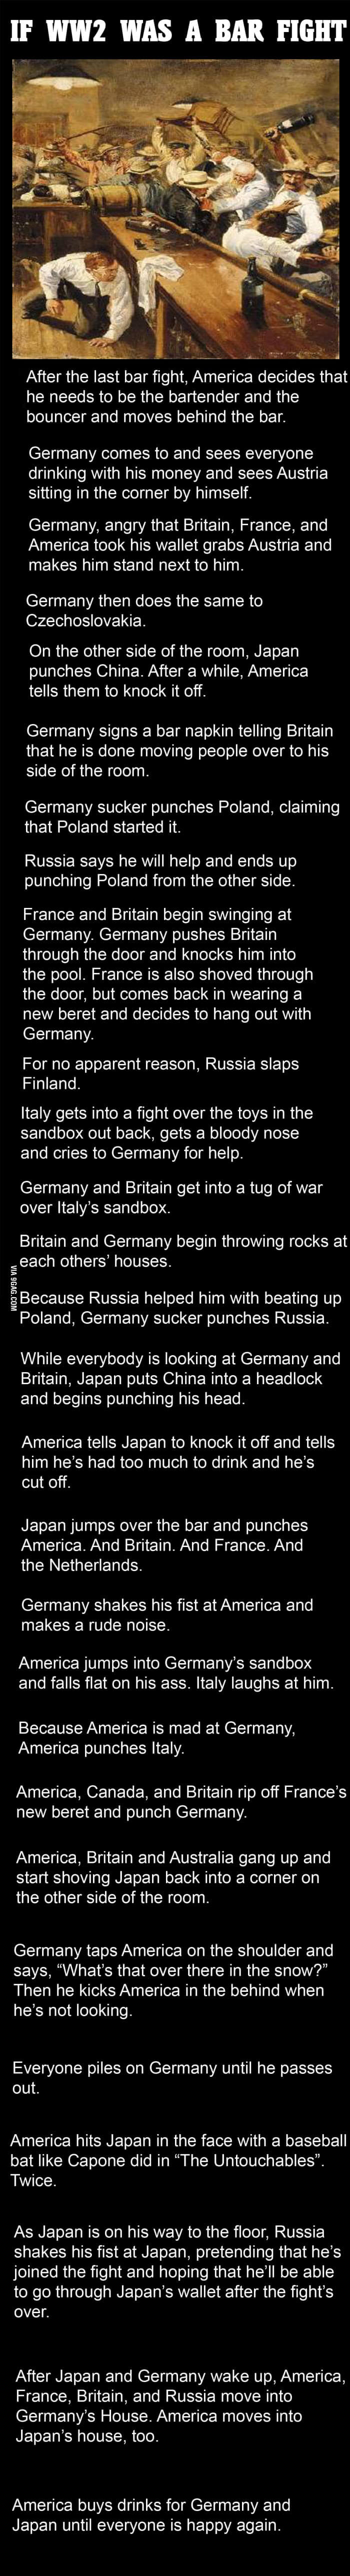 if world war 2 was a bar fight (1)